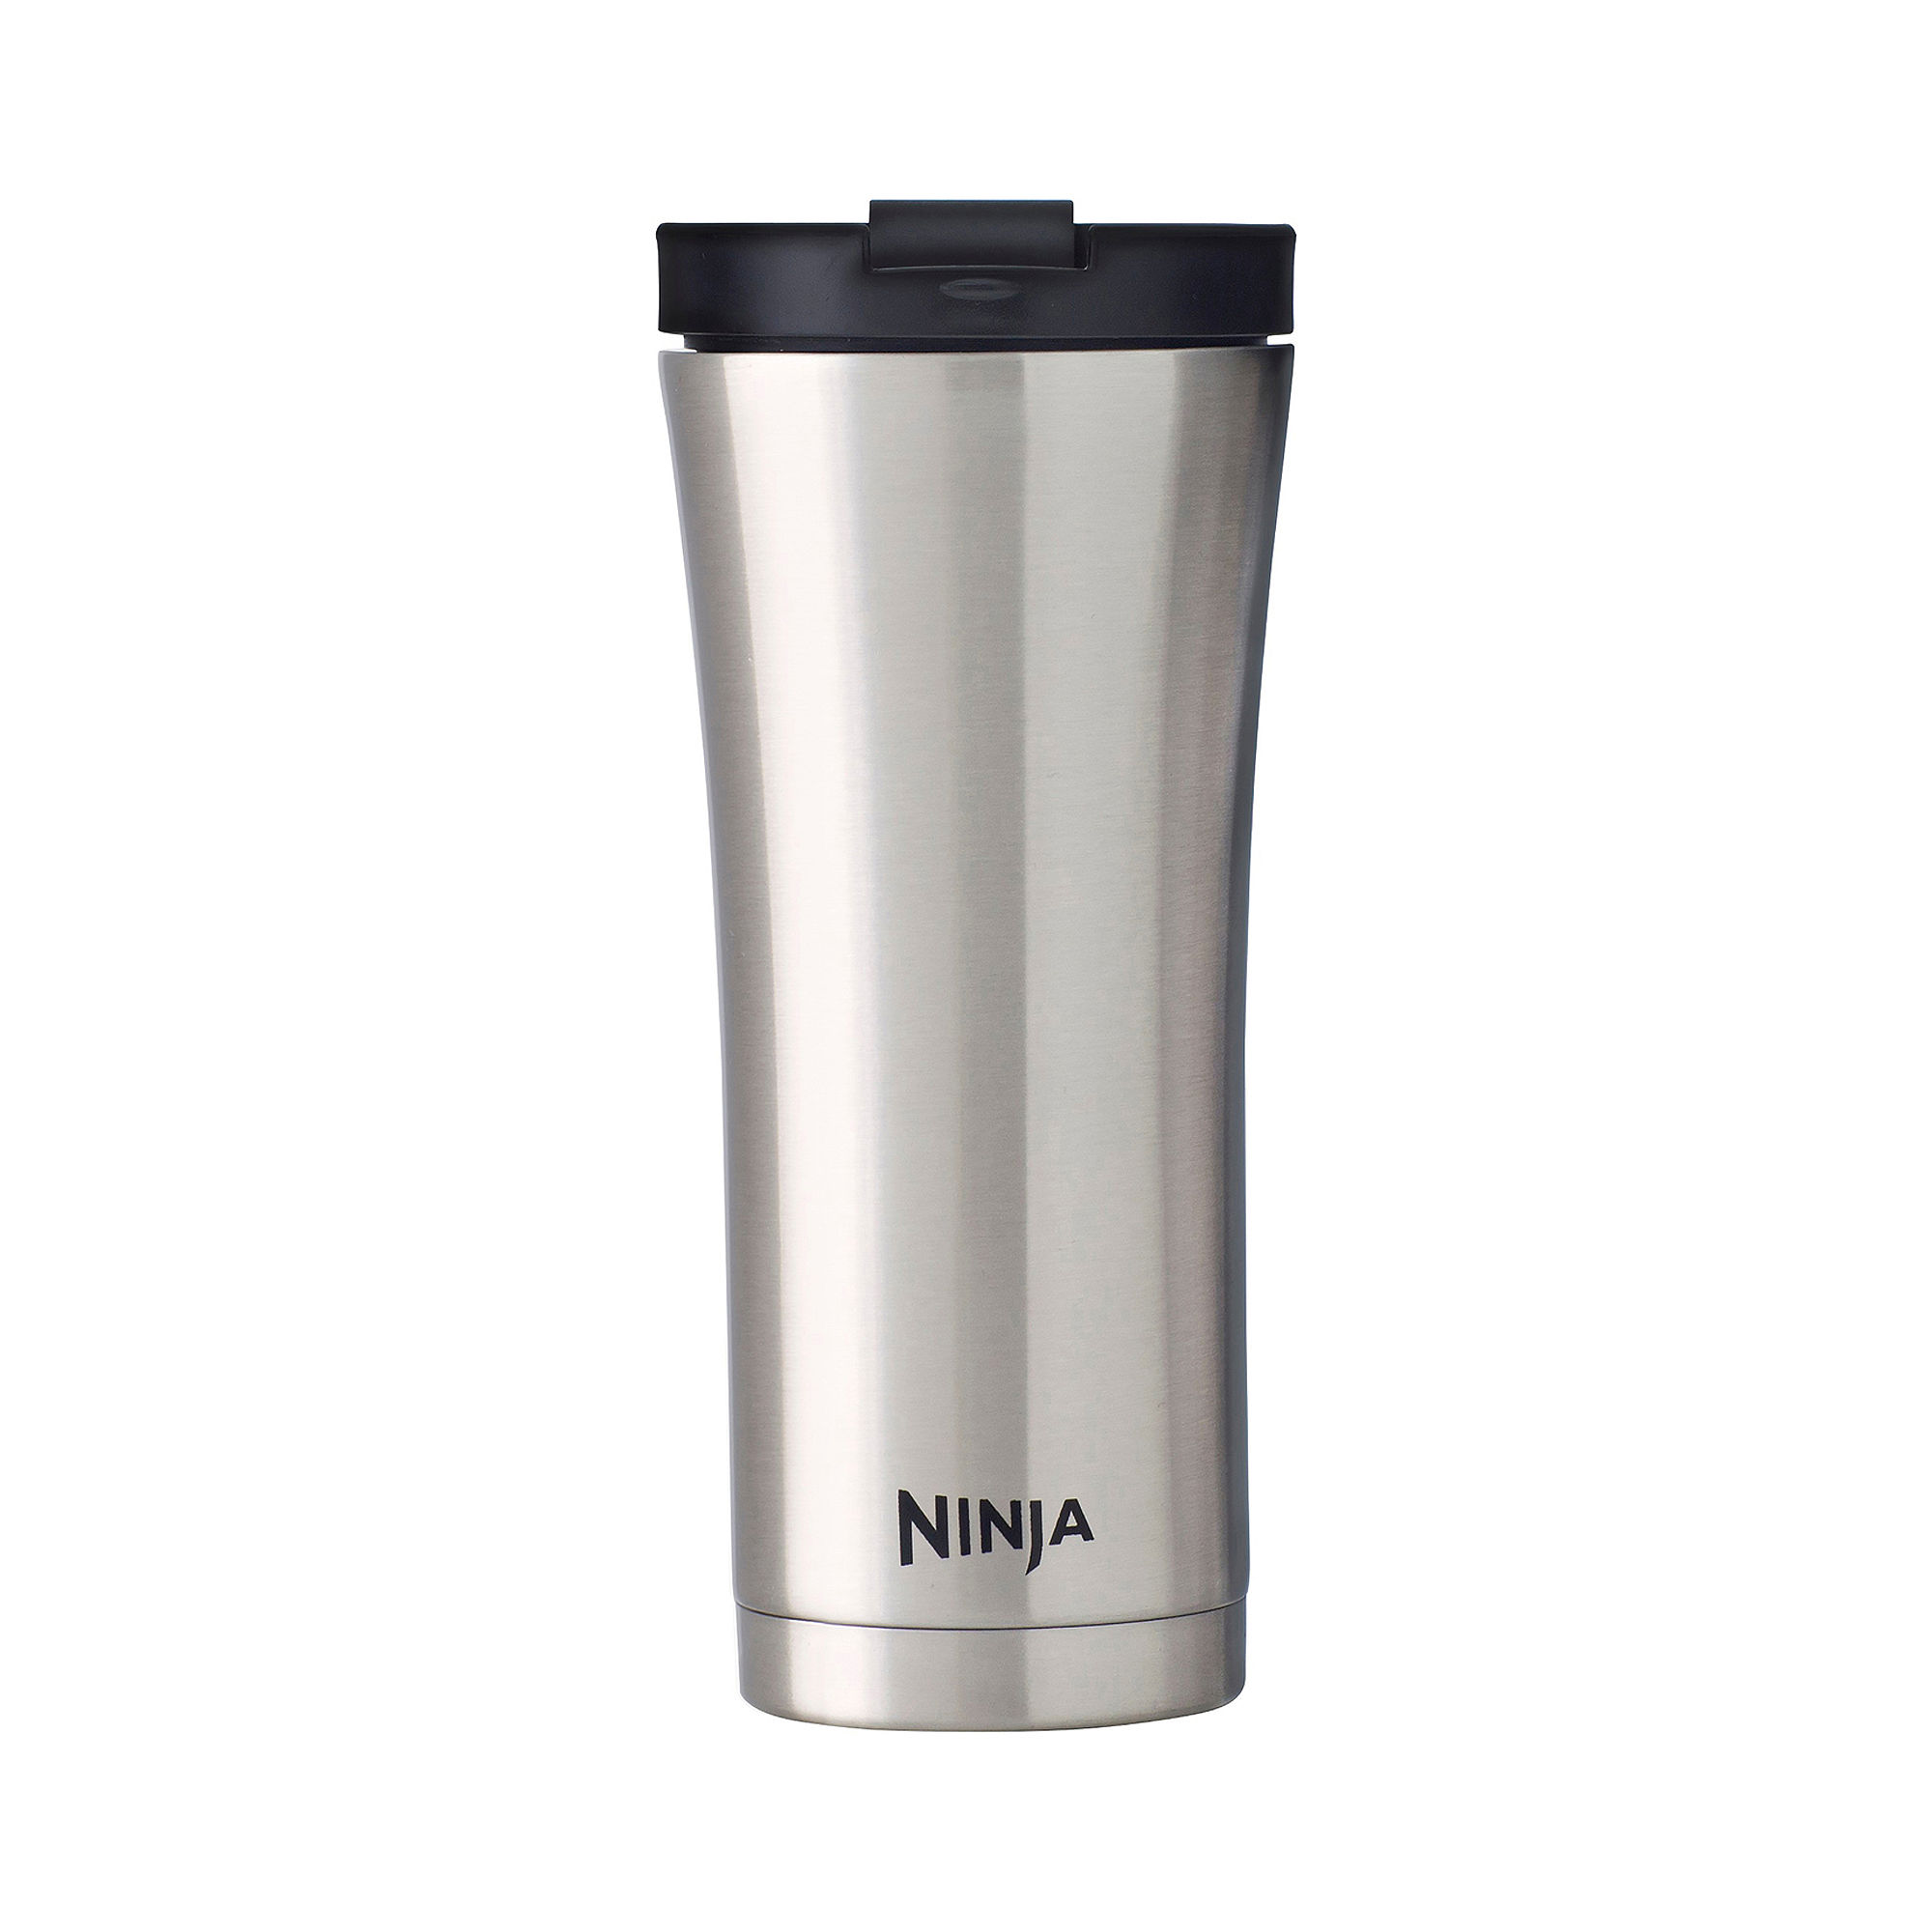 Ninja Pro Single-Serve Blender